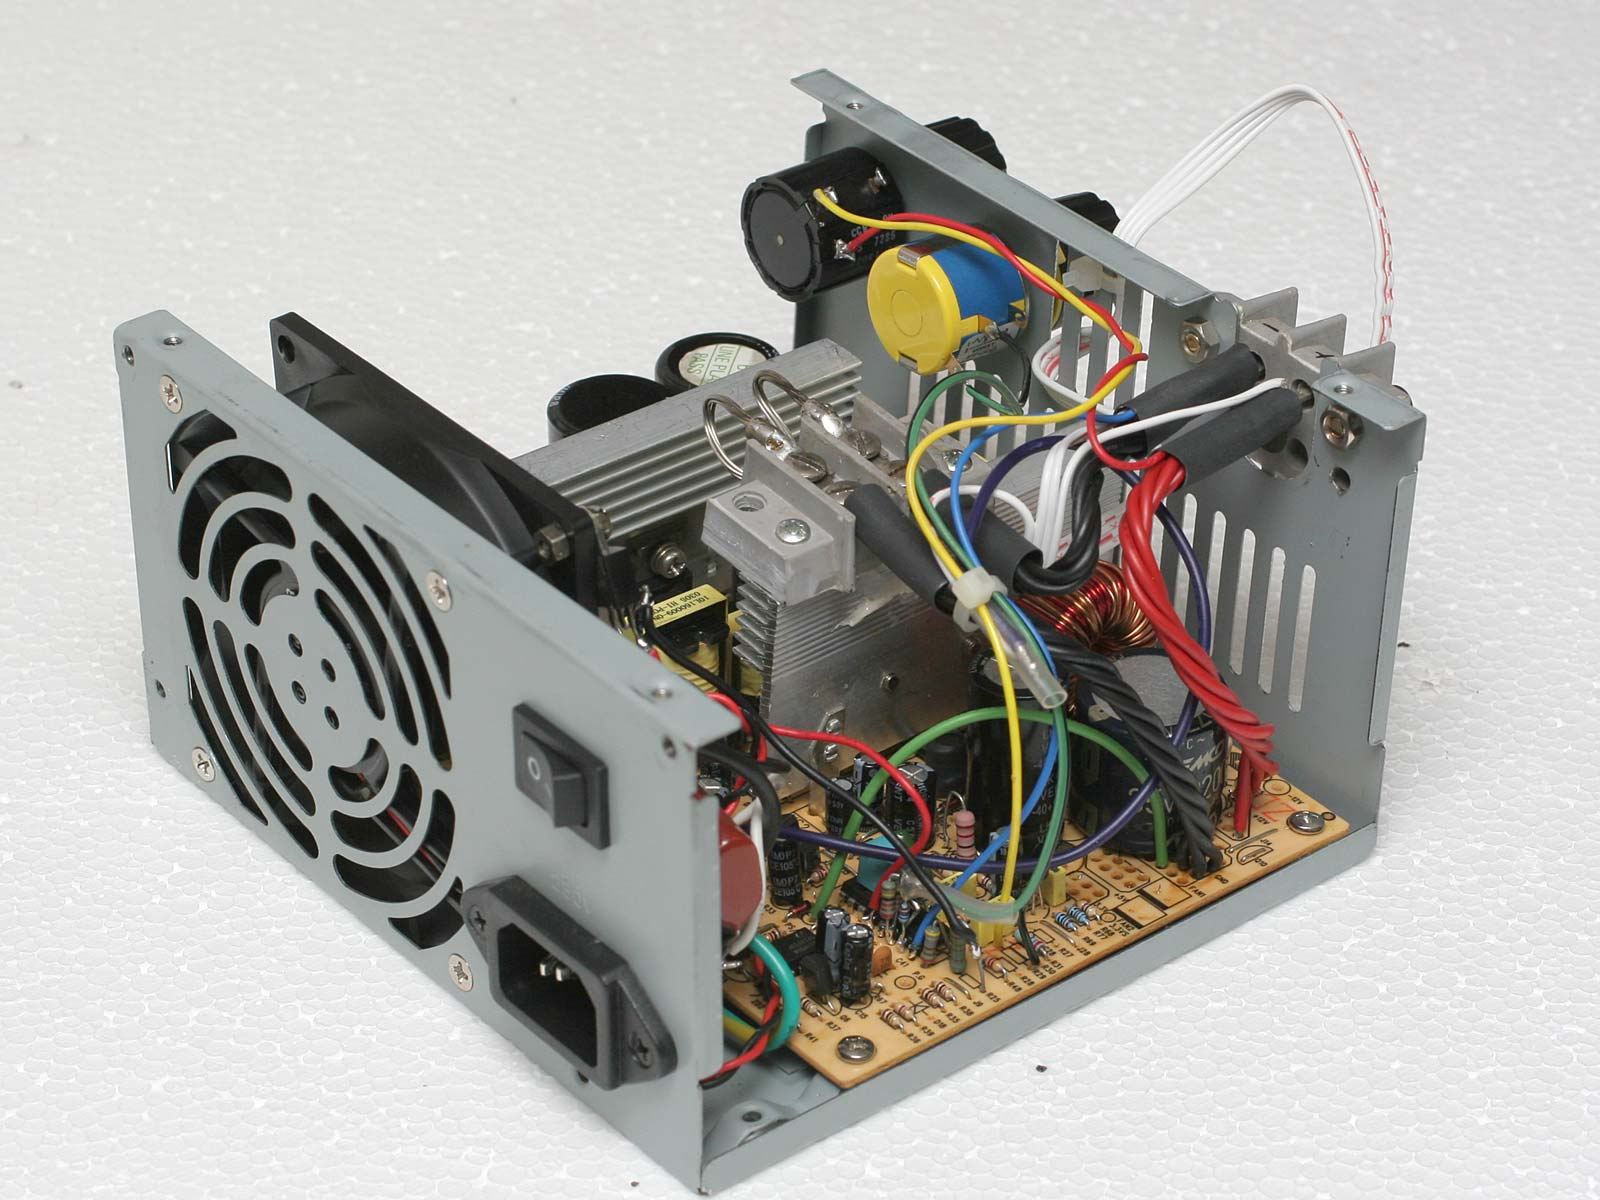 Schema Elettrico Alimentatore Pc Atx : Switching power supply atx come realizzare un sps da laboratorio